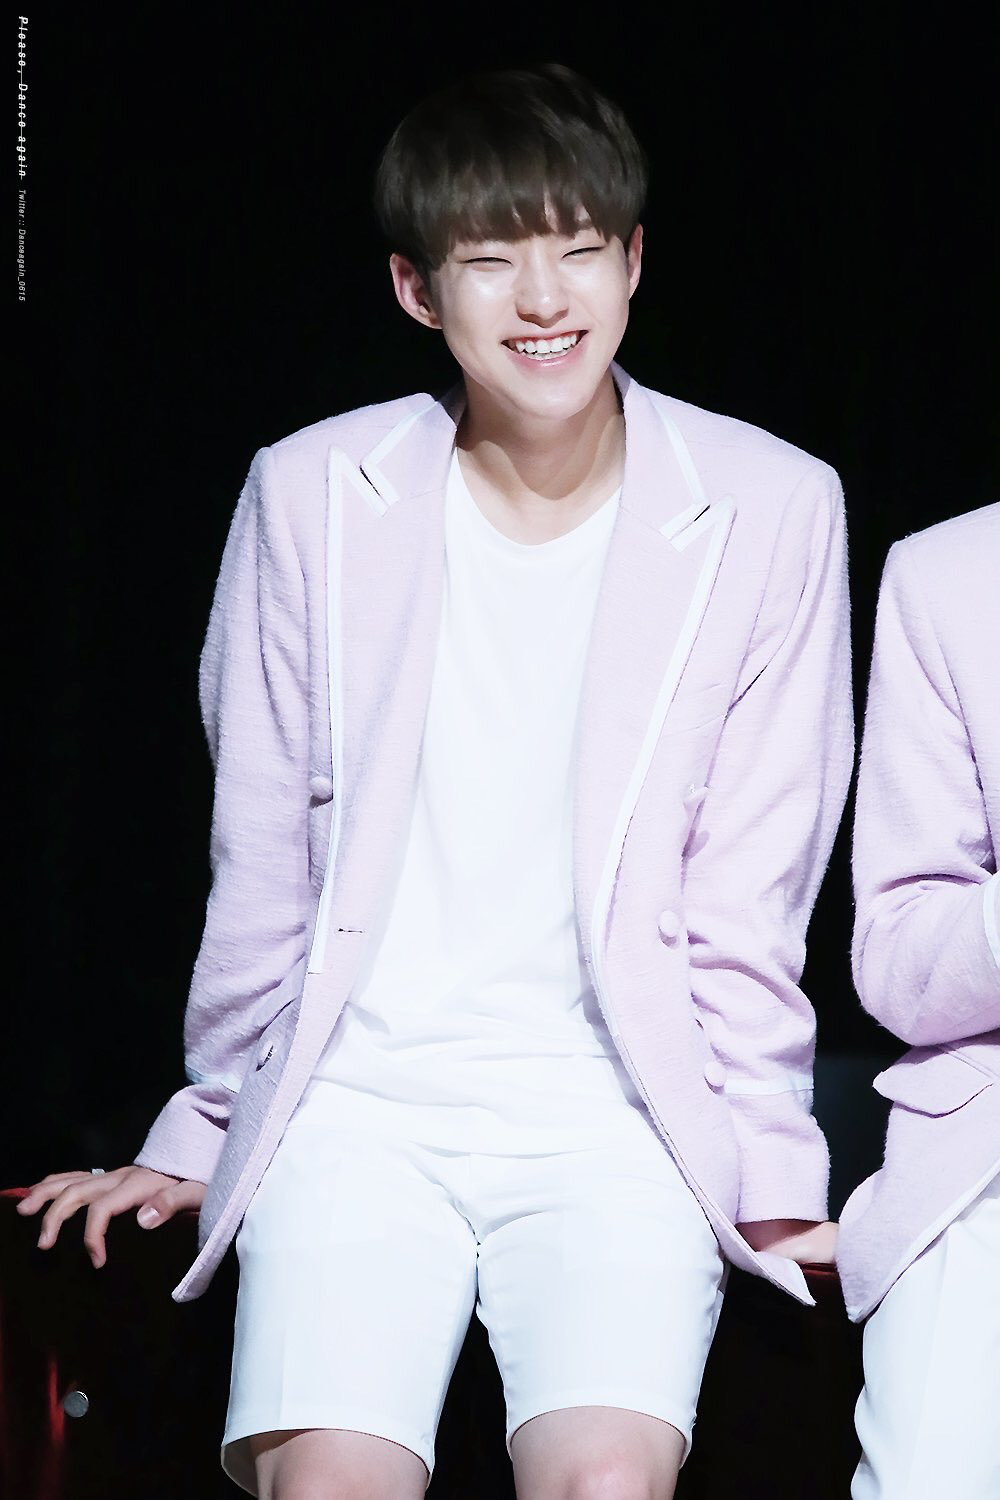 HOSHI☆ this beautiful child | his smile lights up the world | Kwon Soonyoung | svt | Hoshi